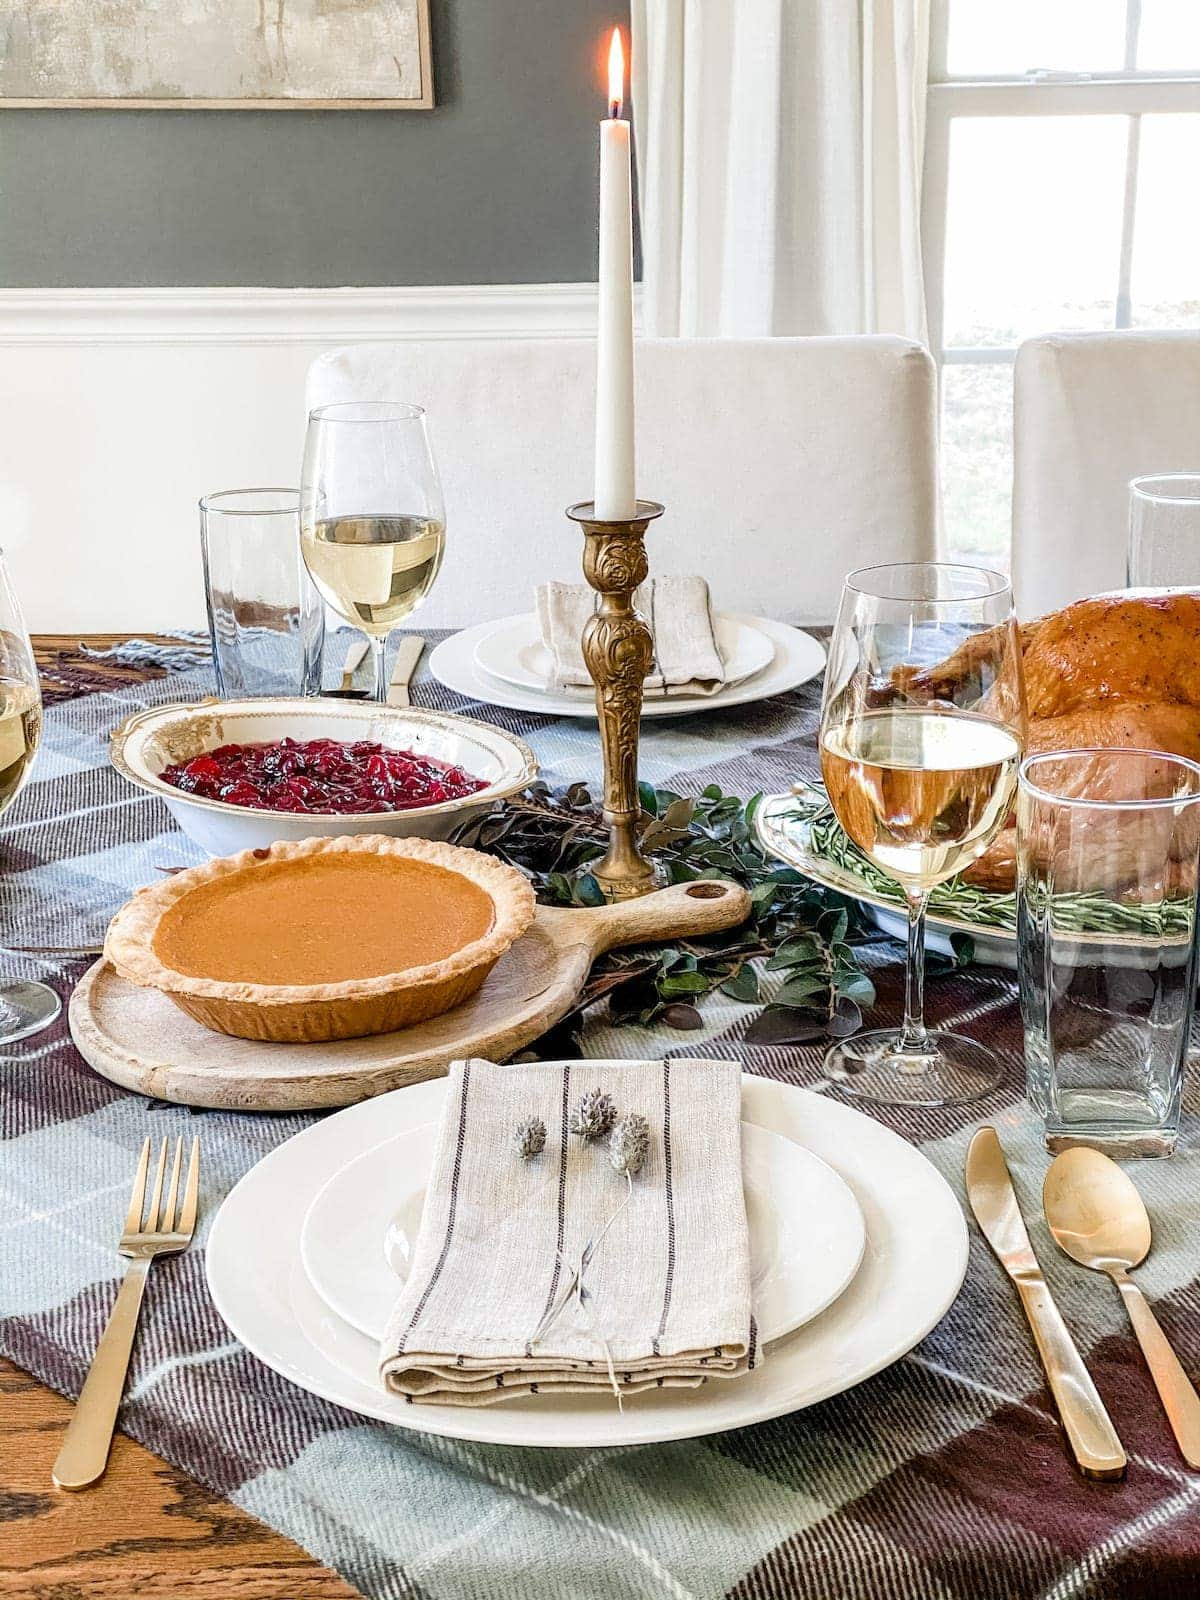 Simple place setting for Thanksgiving table decor